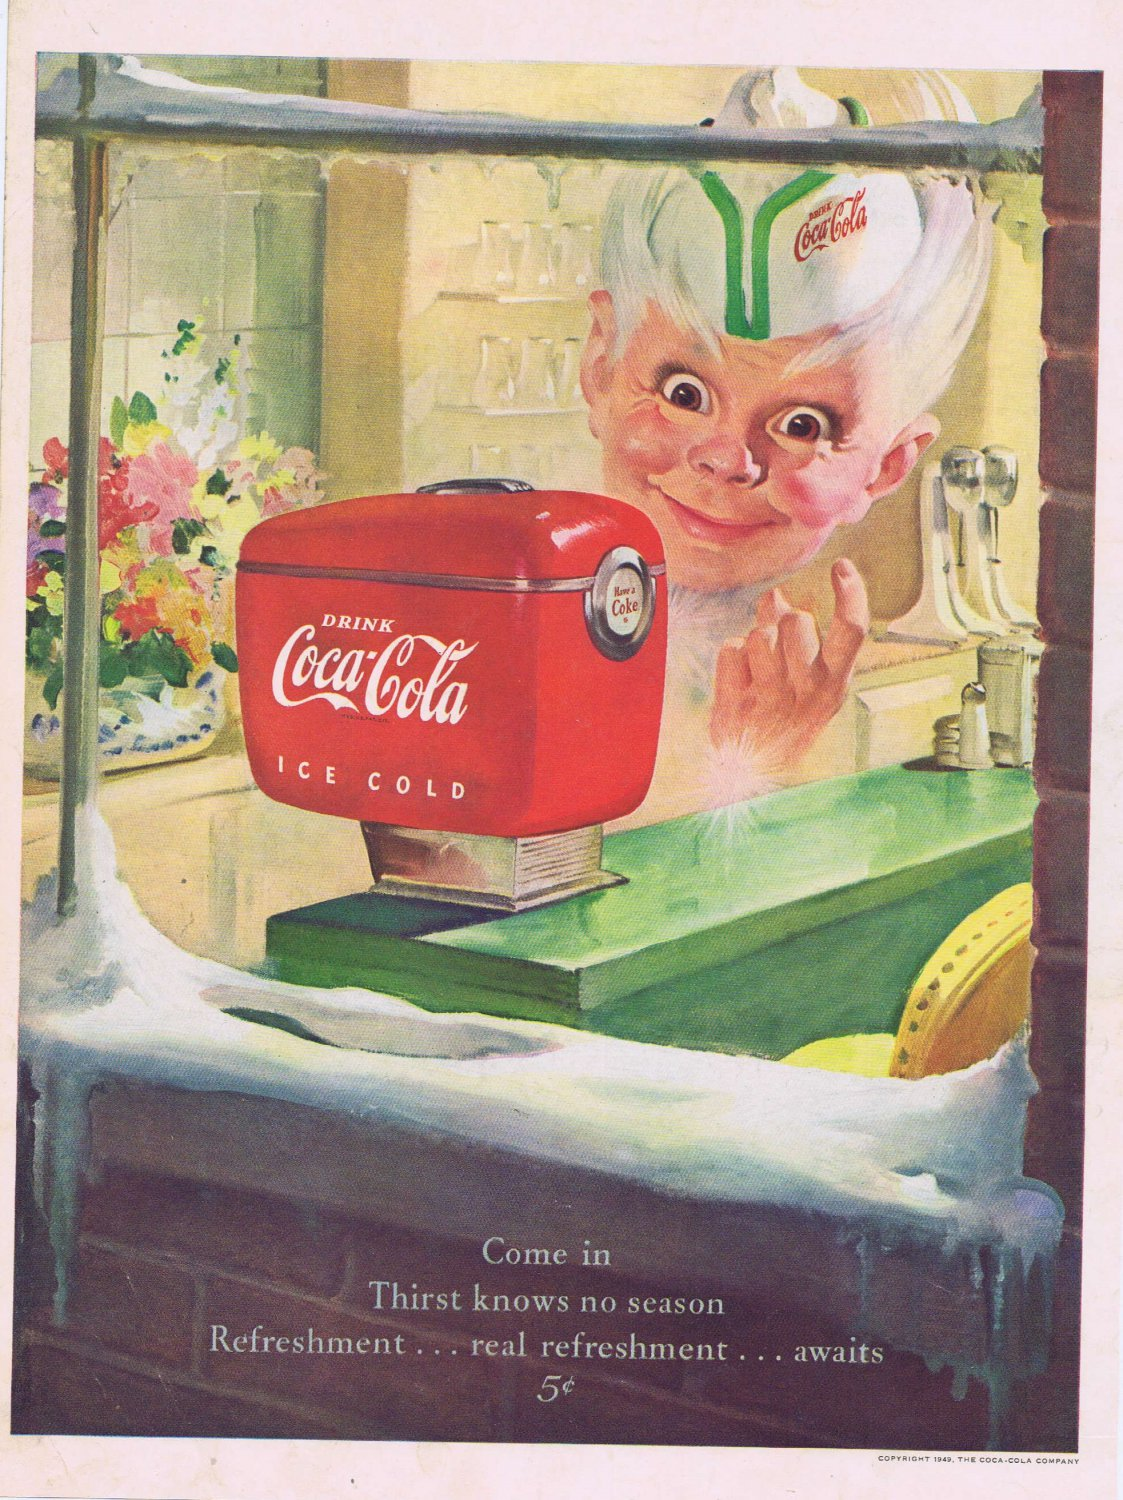 1949 Coca-Cola Soda Original Vintage Advertisement with the Sprite Boy and Coke for 5 cents